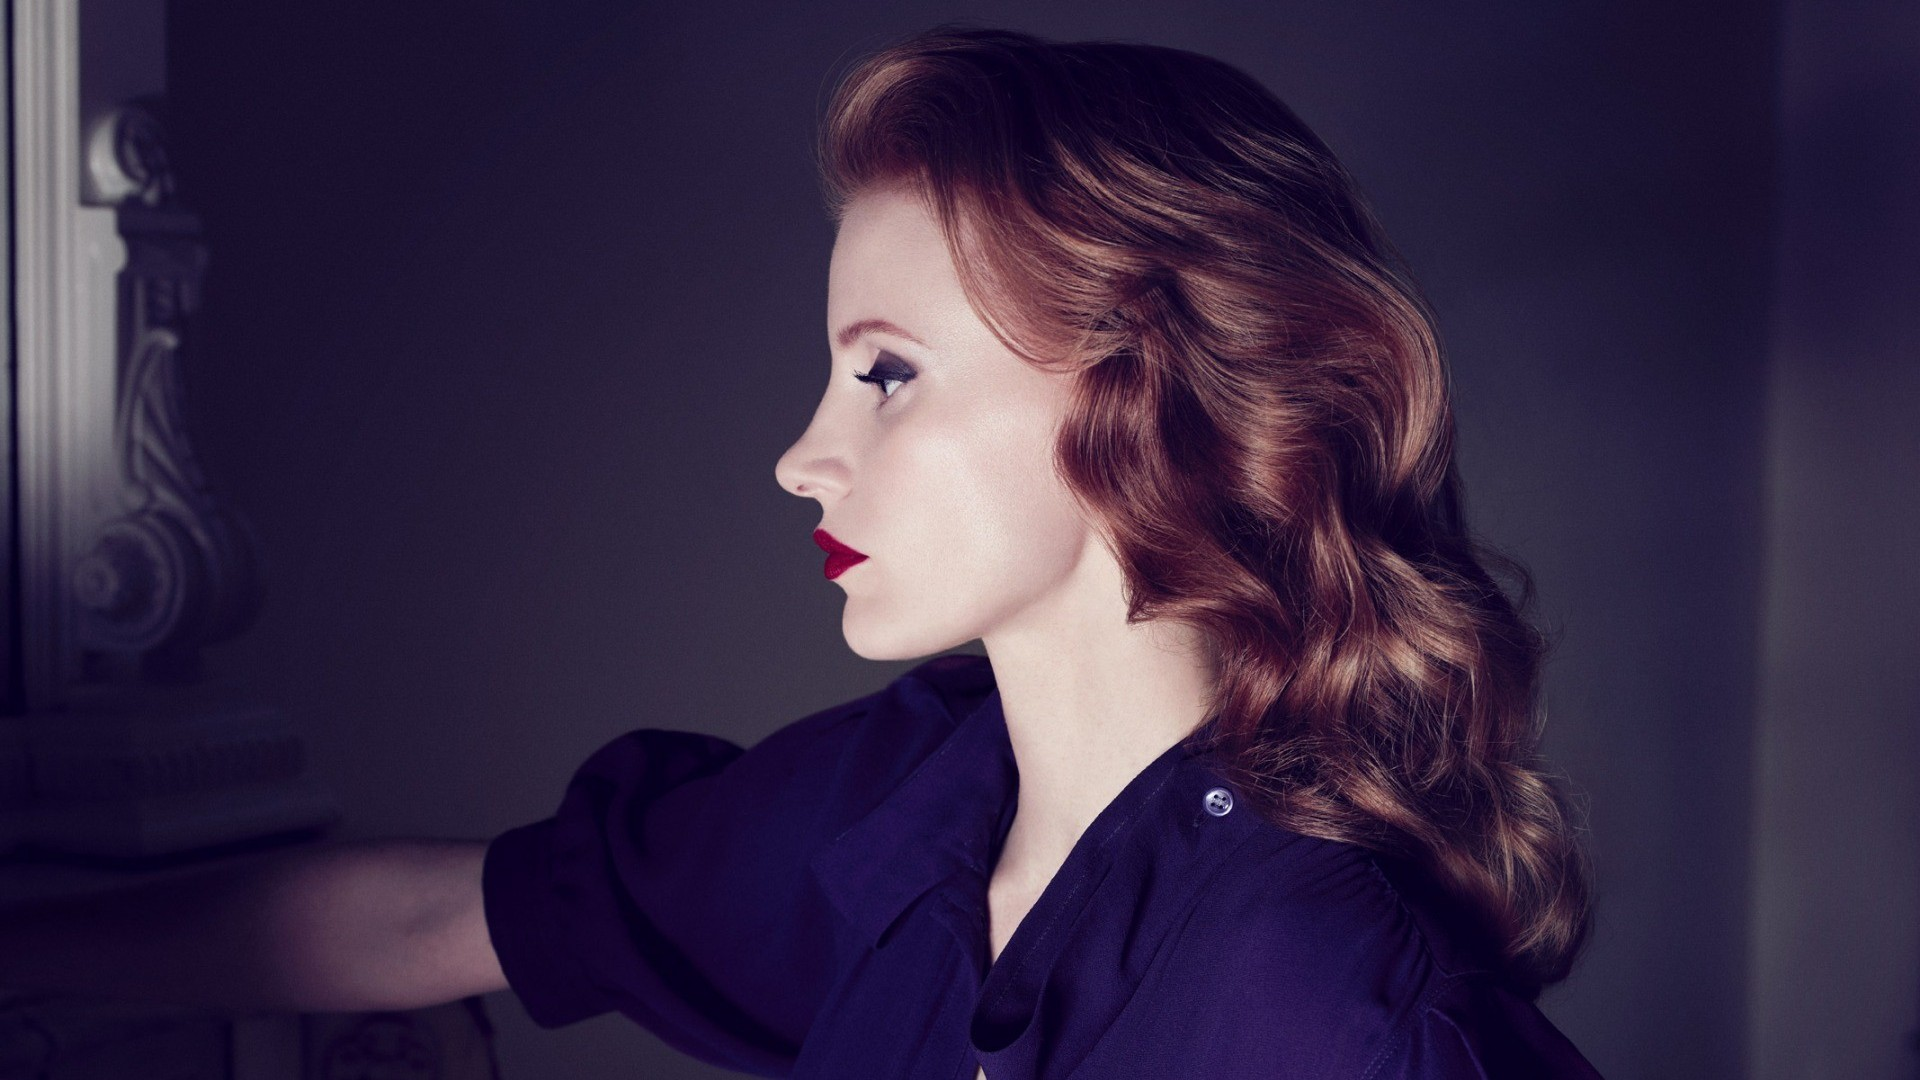 1920x1080 - Jessica Chastain Wallpapers 10